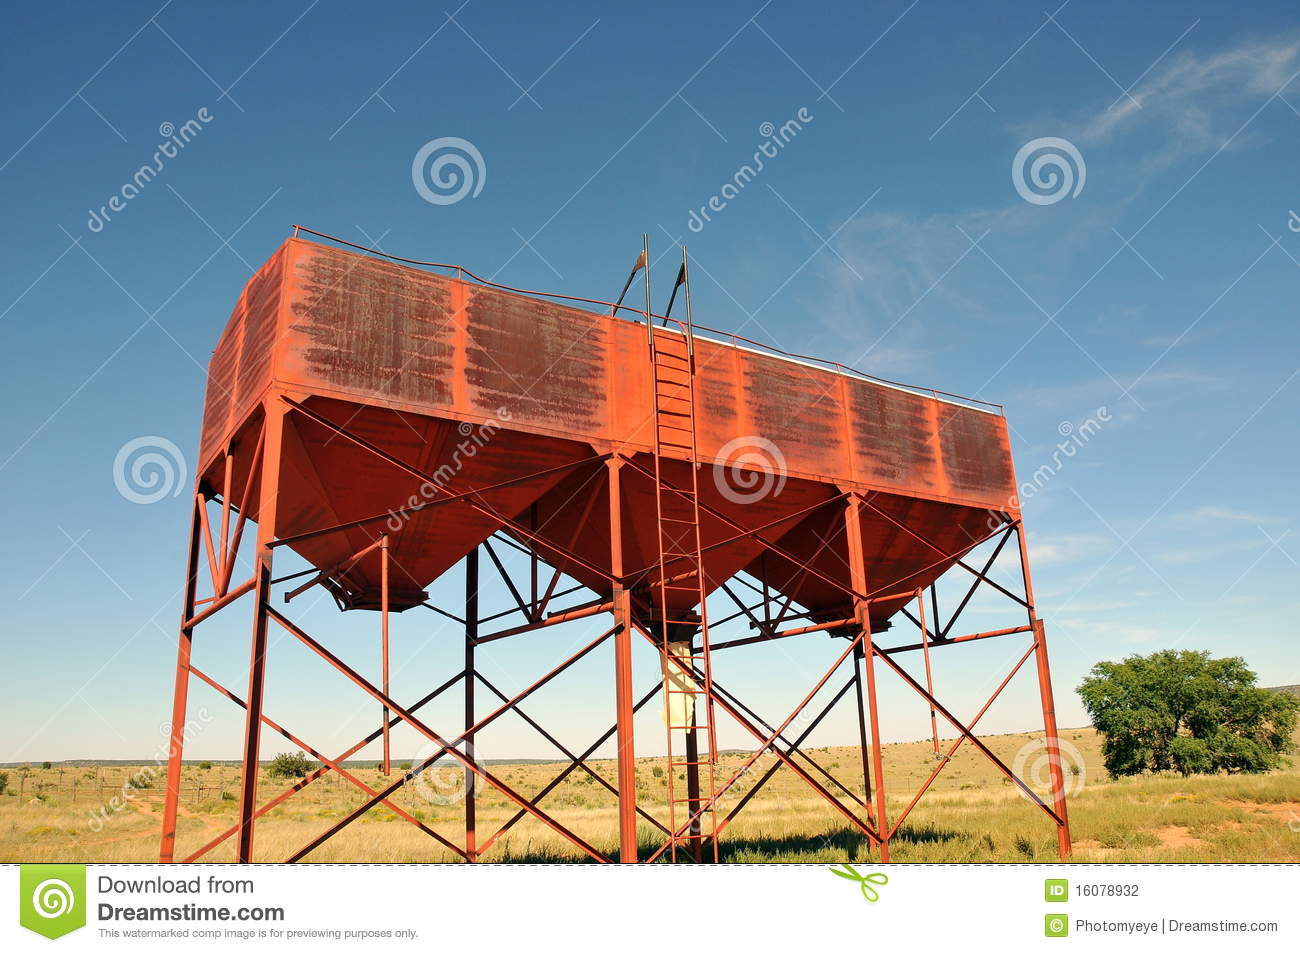 Cattle feed tower stock photo  Image of summertime, silo